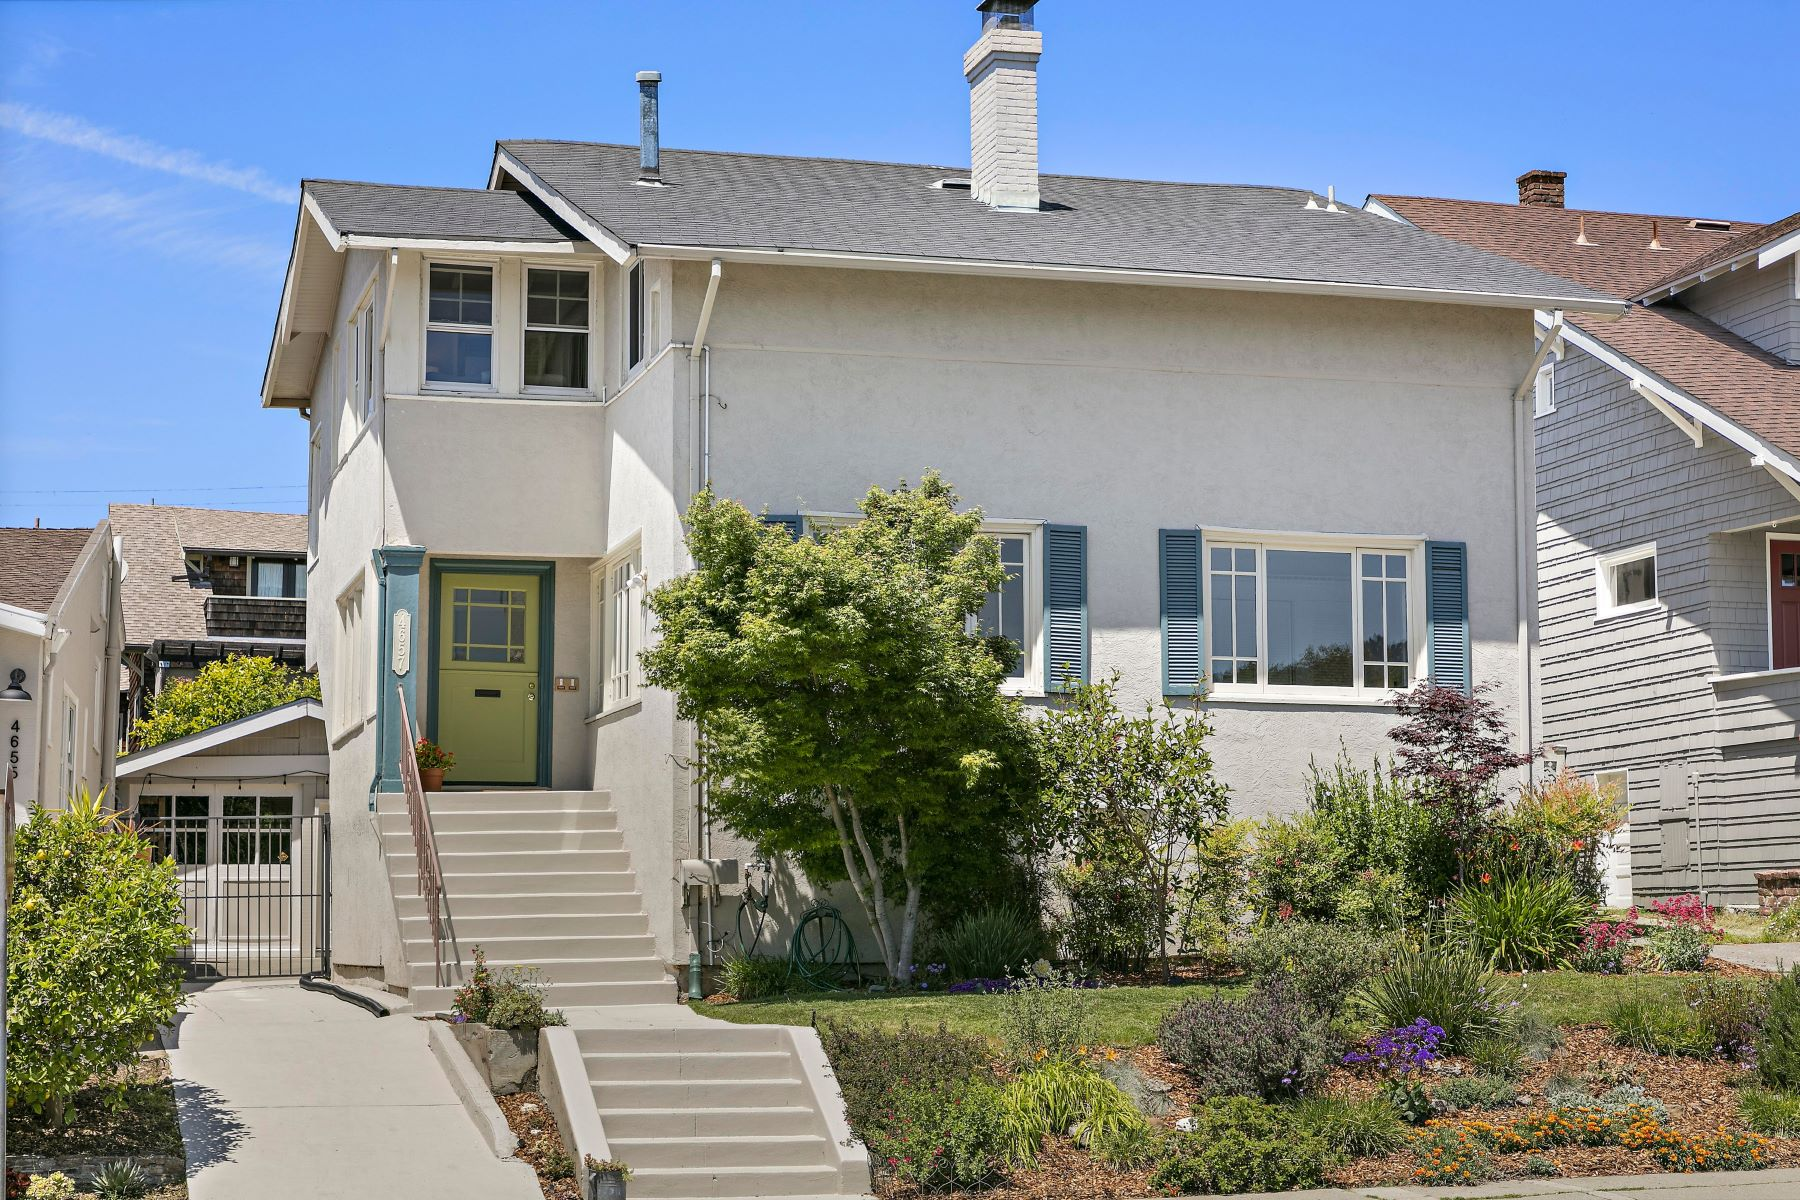 Multi-Family Homes for Sale at Choose Your Community & Love Where You Live 4657 Park Boulevard Oakland, California 94602 United States